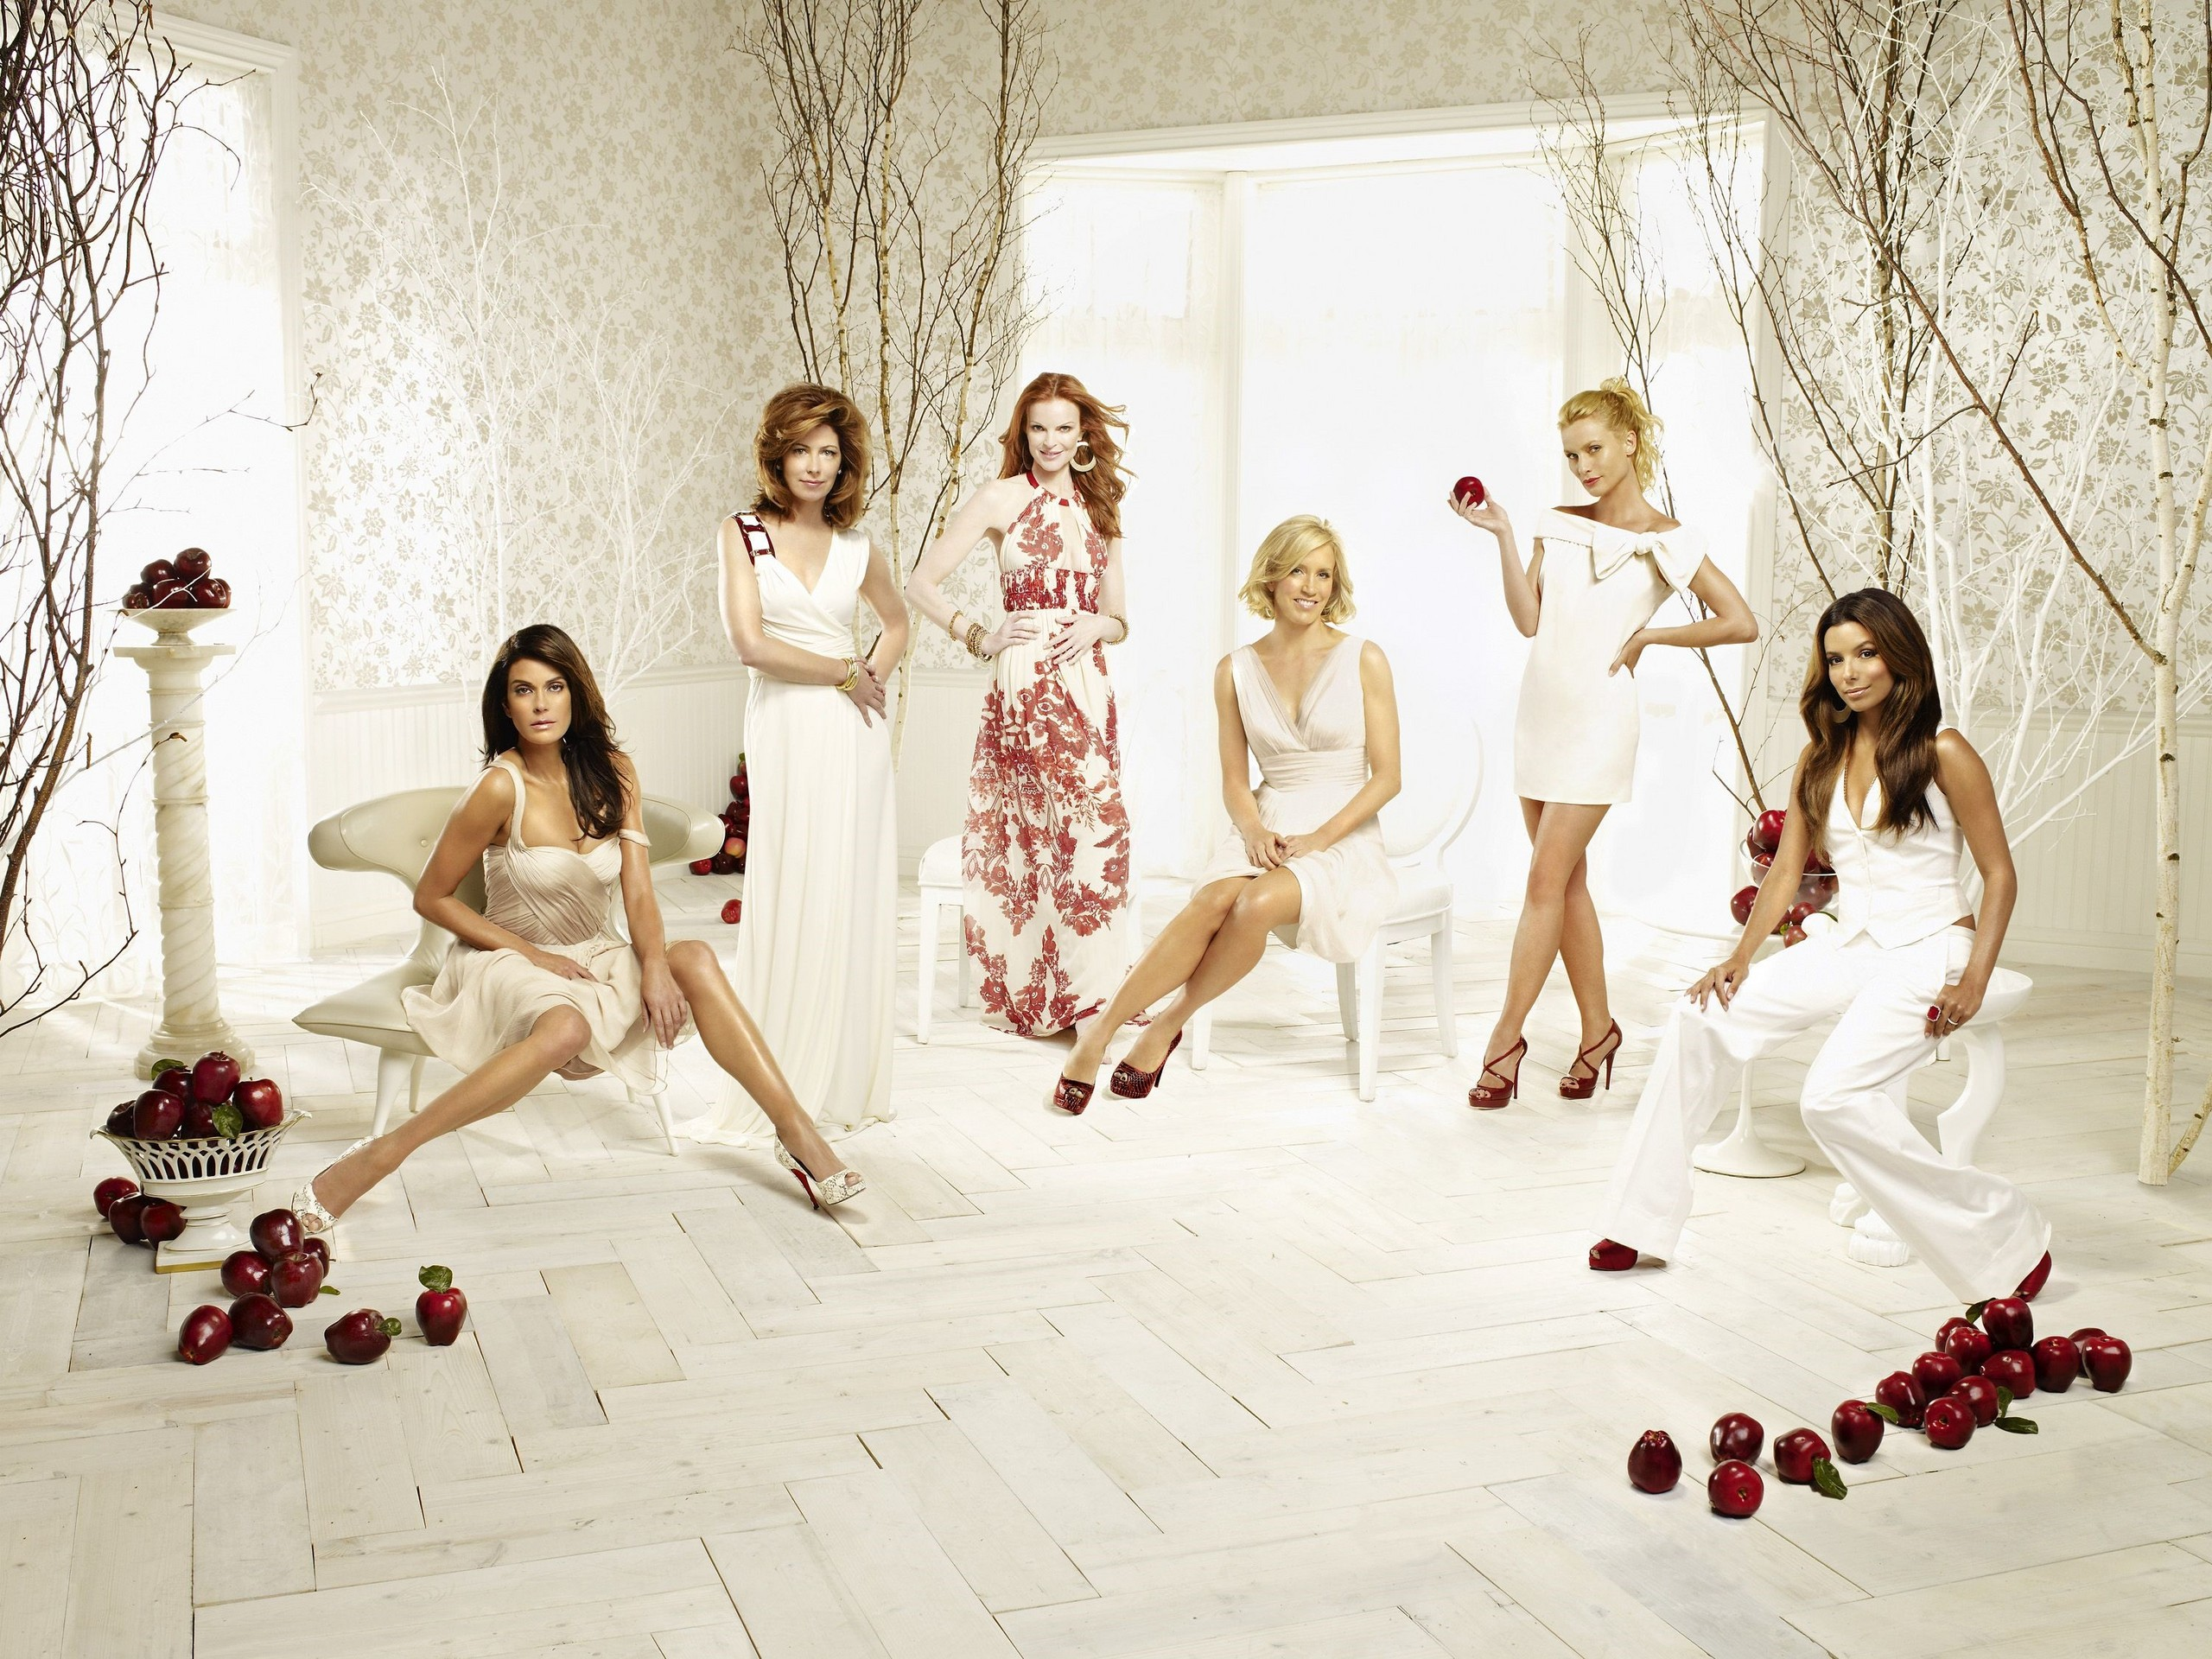 Desperate Housewives Cast Desperatehousewives